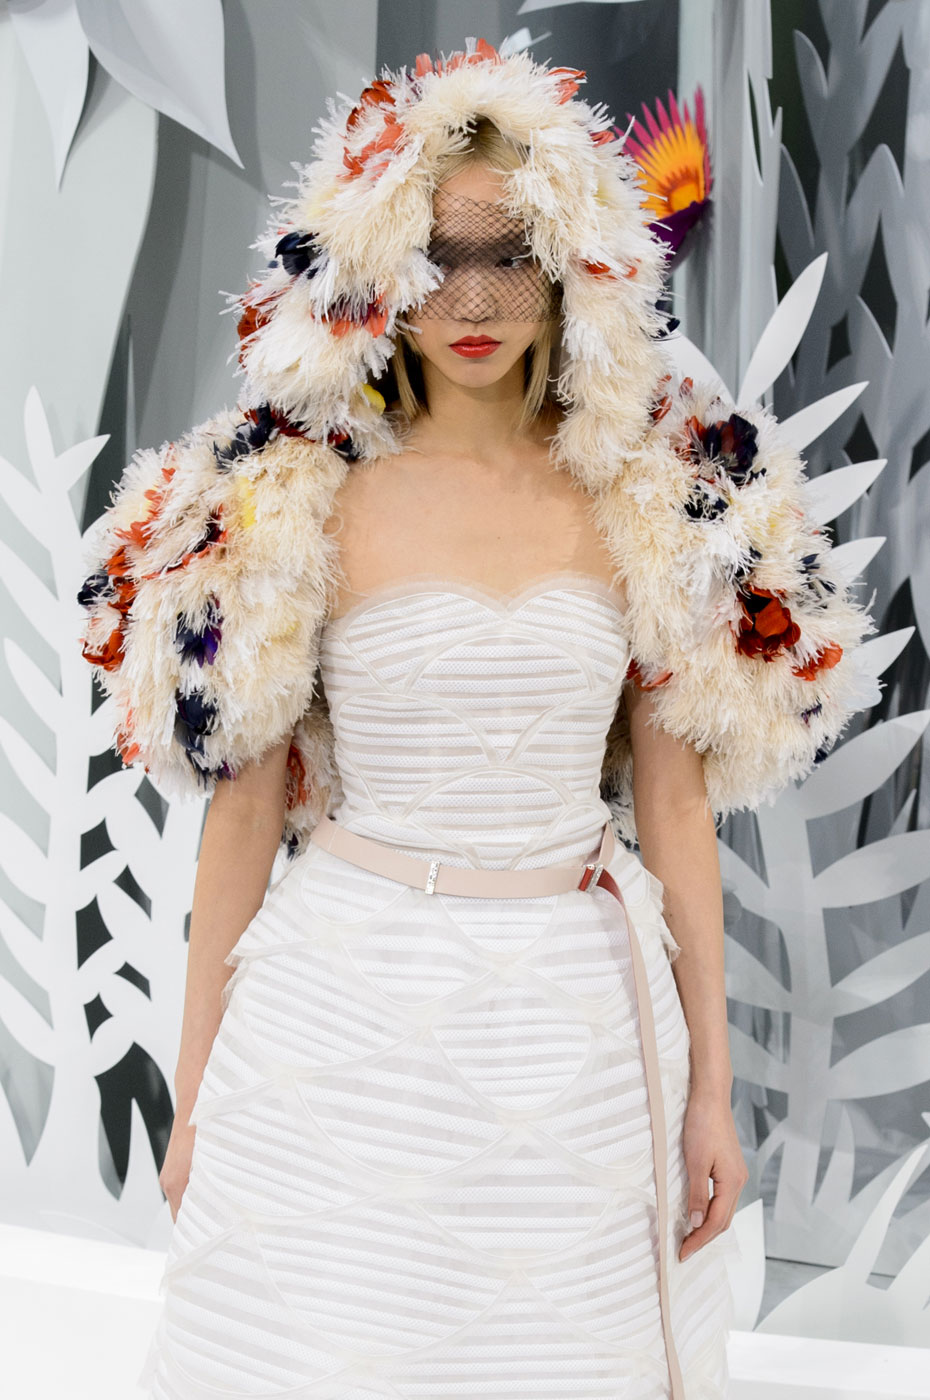 Chanel-fashion-runway-show-haute-couture-paris-spring-summer-2015-the-impression-138